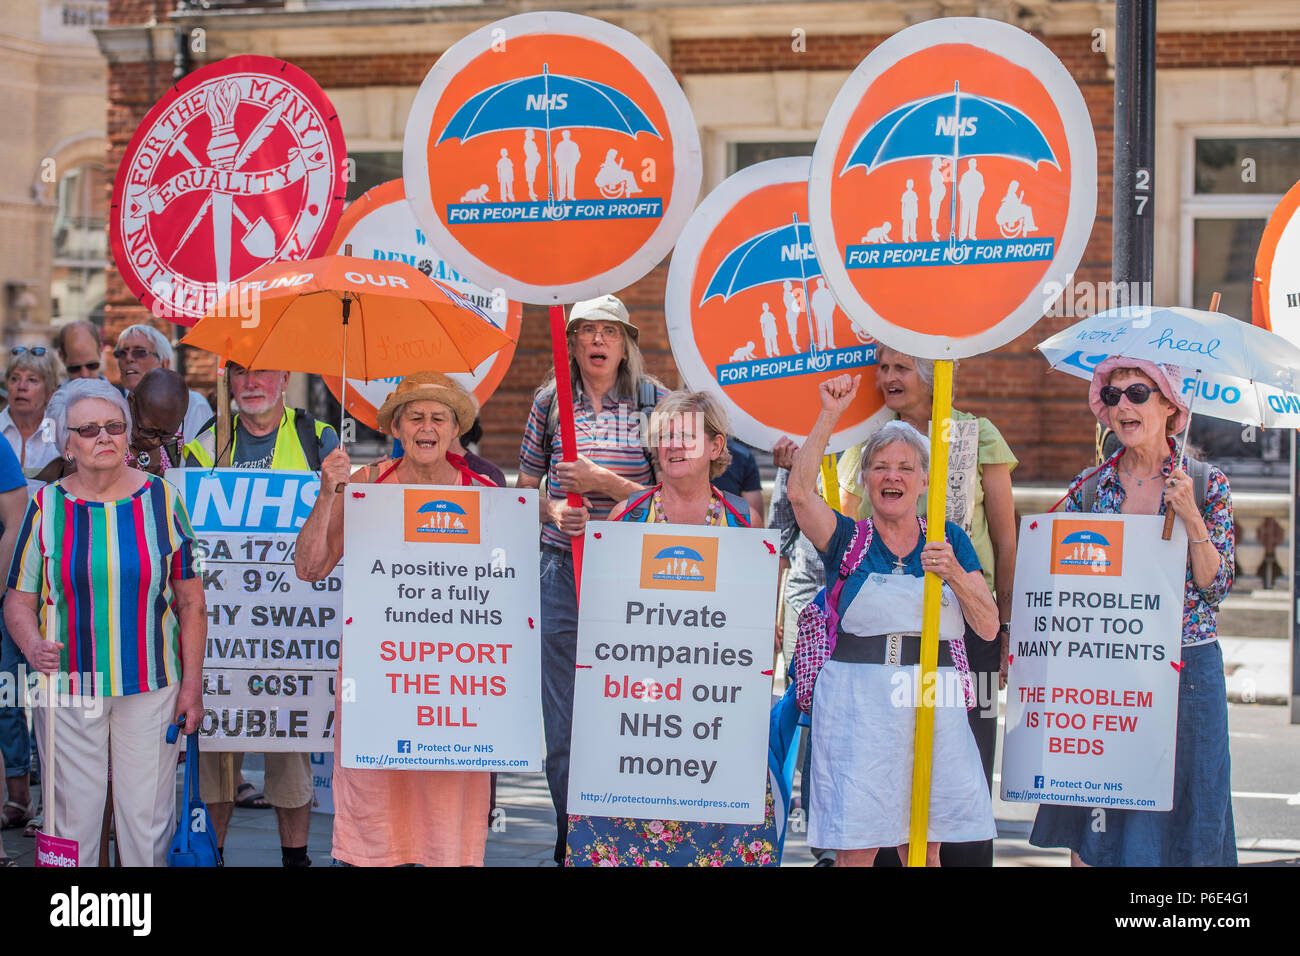 London, UK, 30 June 2018. #OurNHS70: free, for all, forever a protest and celebration march in honour of the 70 year history of the National Health Service. Organised by: The People's Assembly, Trades Union Congress, Unison, Unite, GMB, British Medical Association, Royal College of Nursing, Royal College of Midwives amongst others. - Stock Image